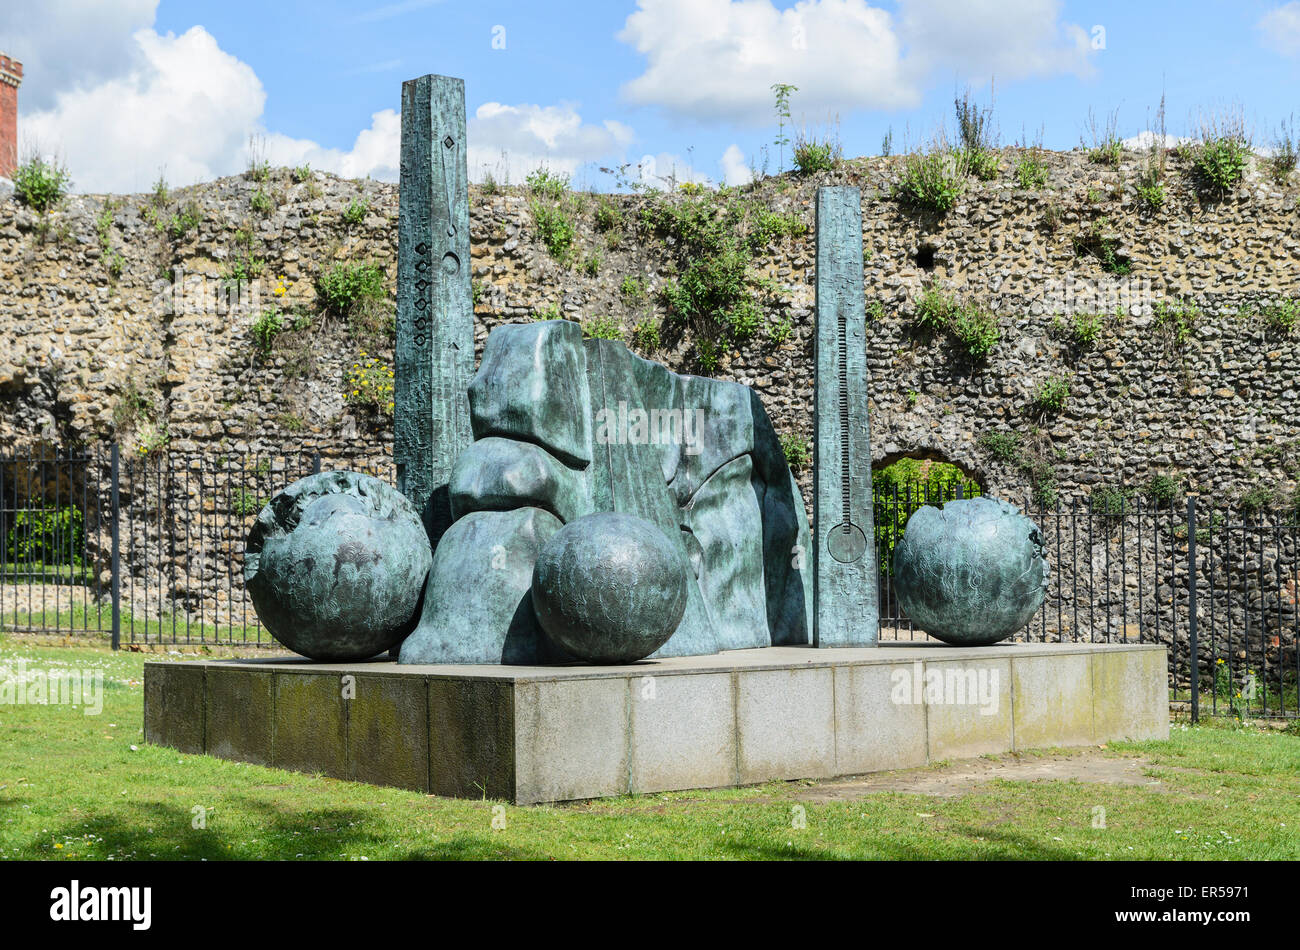 A sculpture by Jens Flemming Sørensen in the Abbey Gardens, Reading, Berkshire, U.K the site of the ruins of - Stock Image